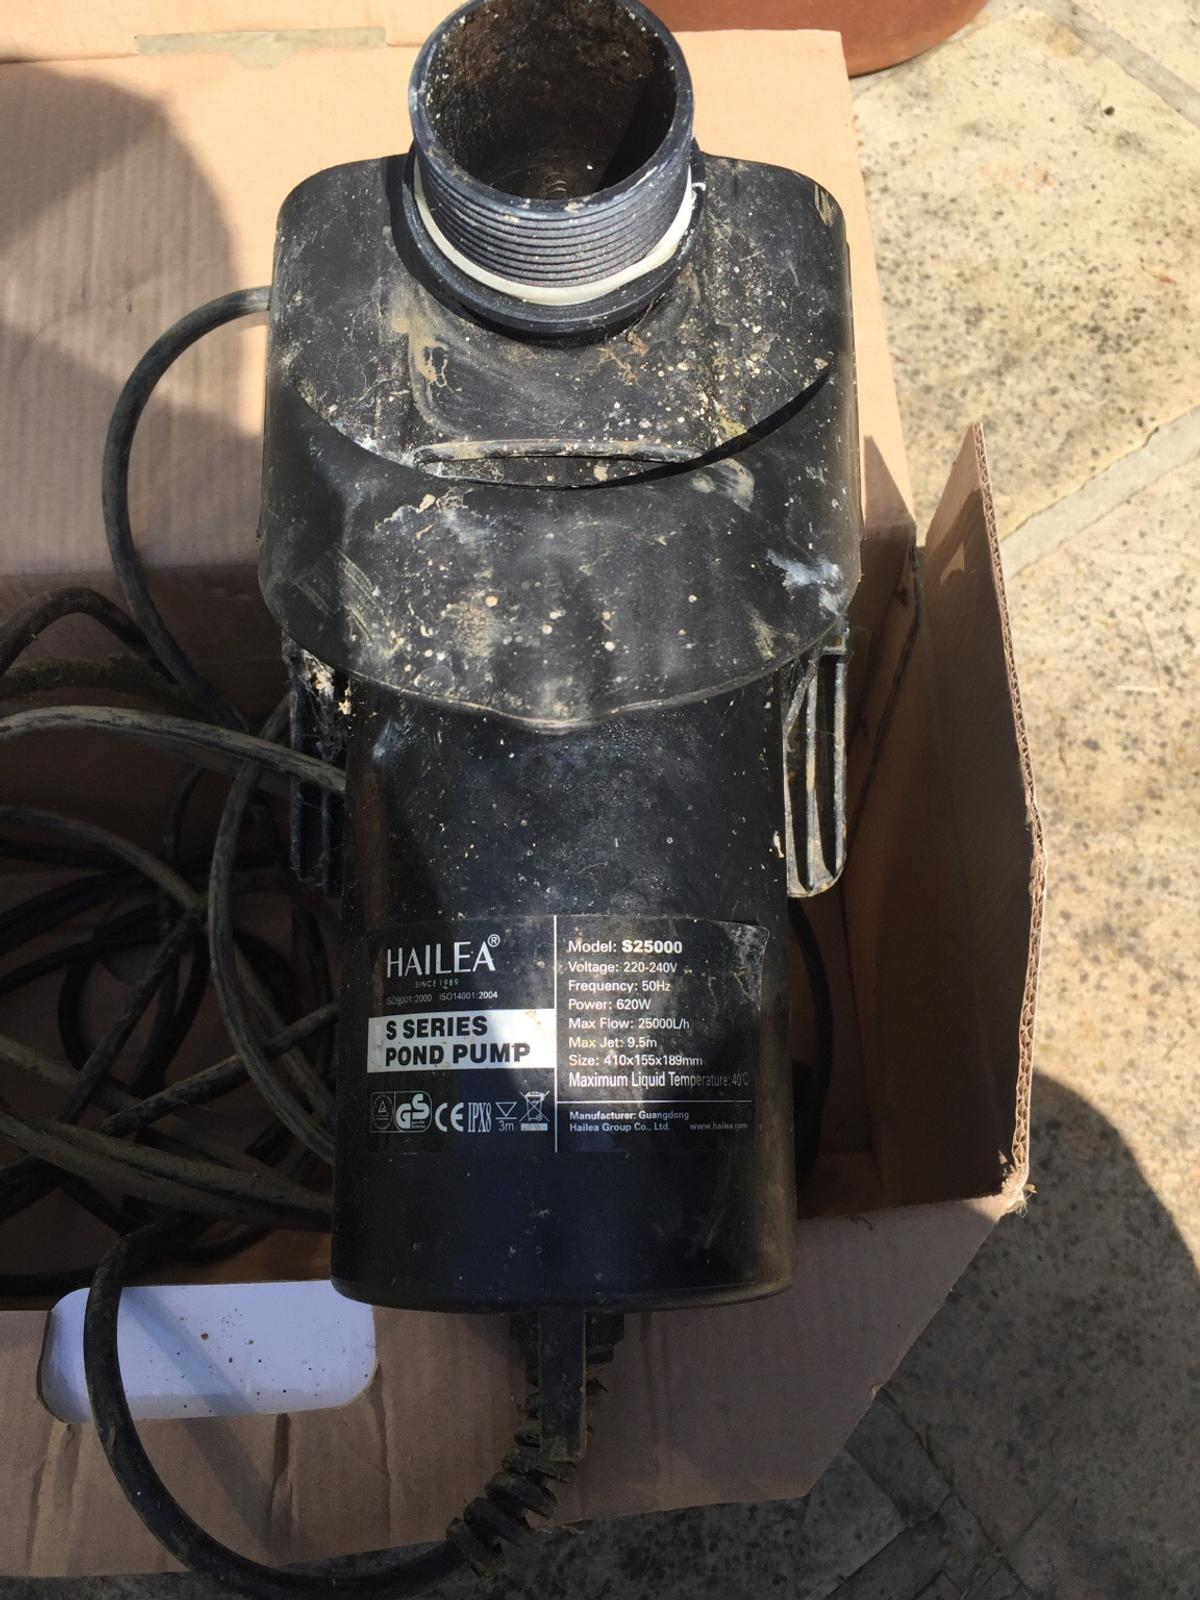 Awesome Hailea S25000 Submersible Pond Pump In Rm11 Havering Fur 45 00 Wiring Cloud Oideiuggs Outletorg